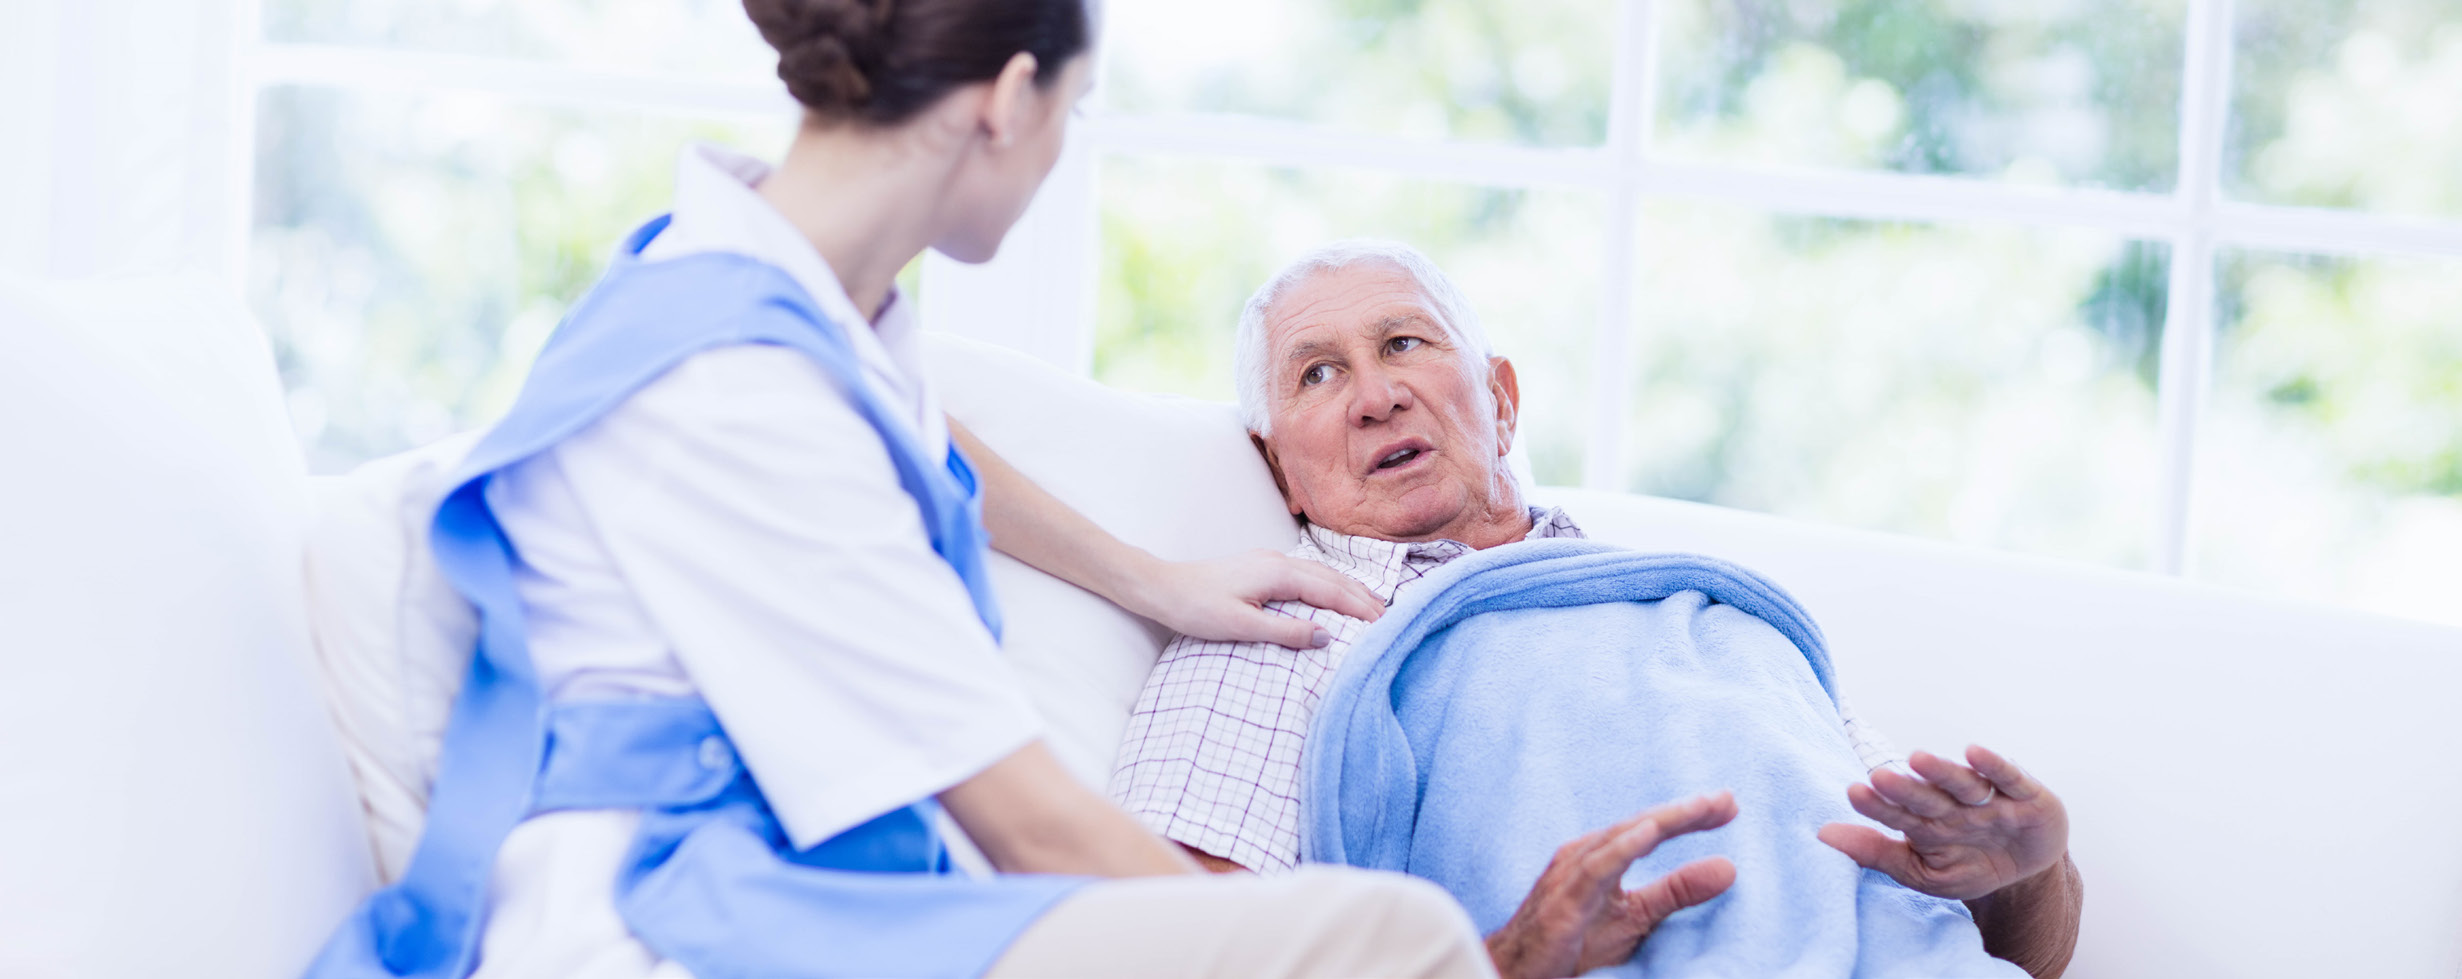 Aged Care Worker and Patient